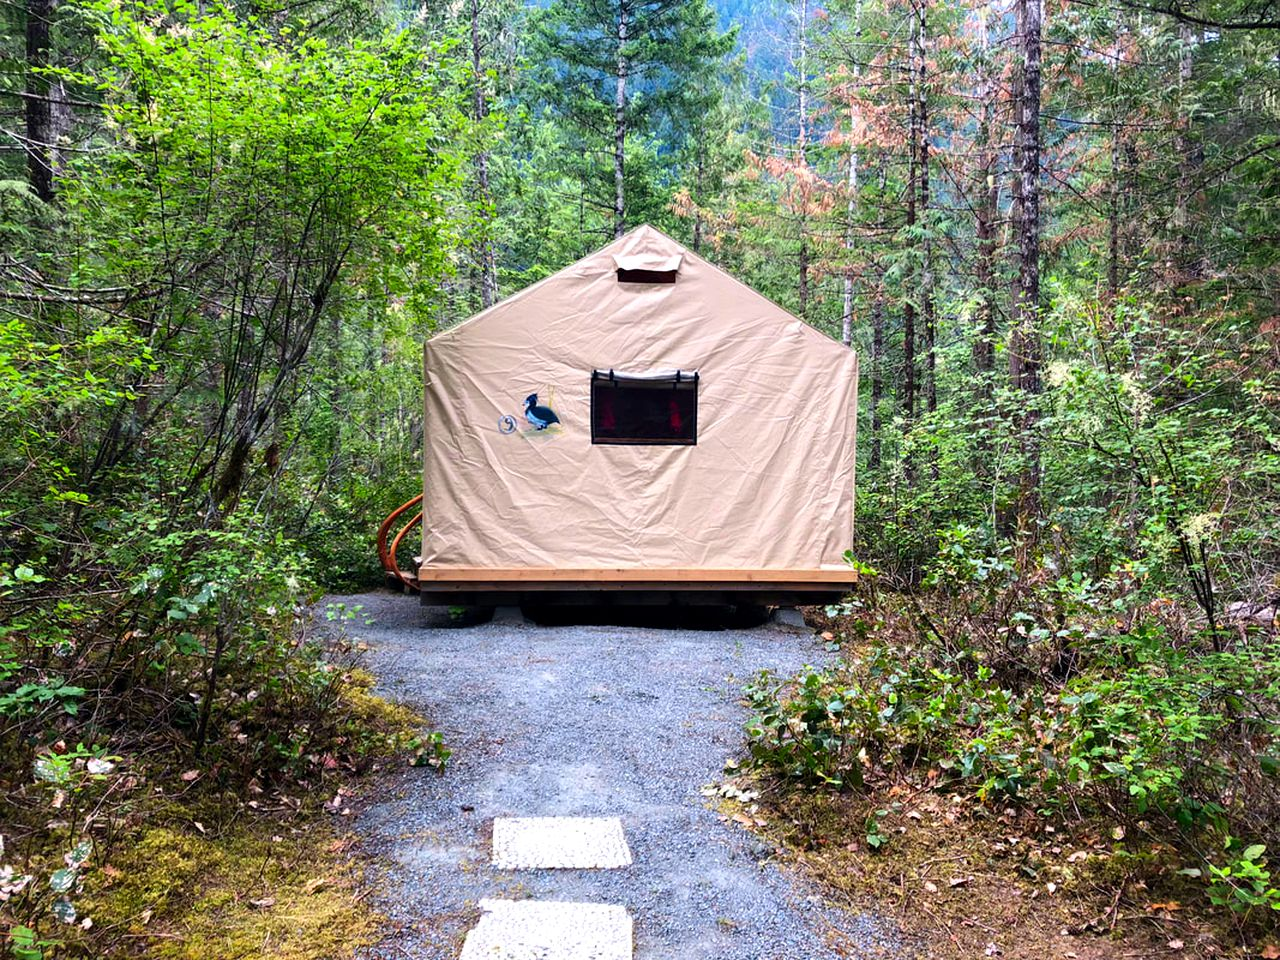 Safari Tents (Madeira Park, British Columbia, Canada)